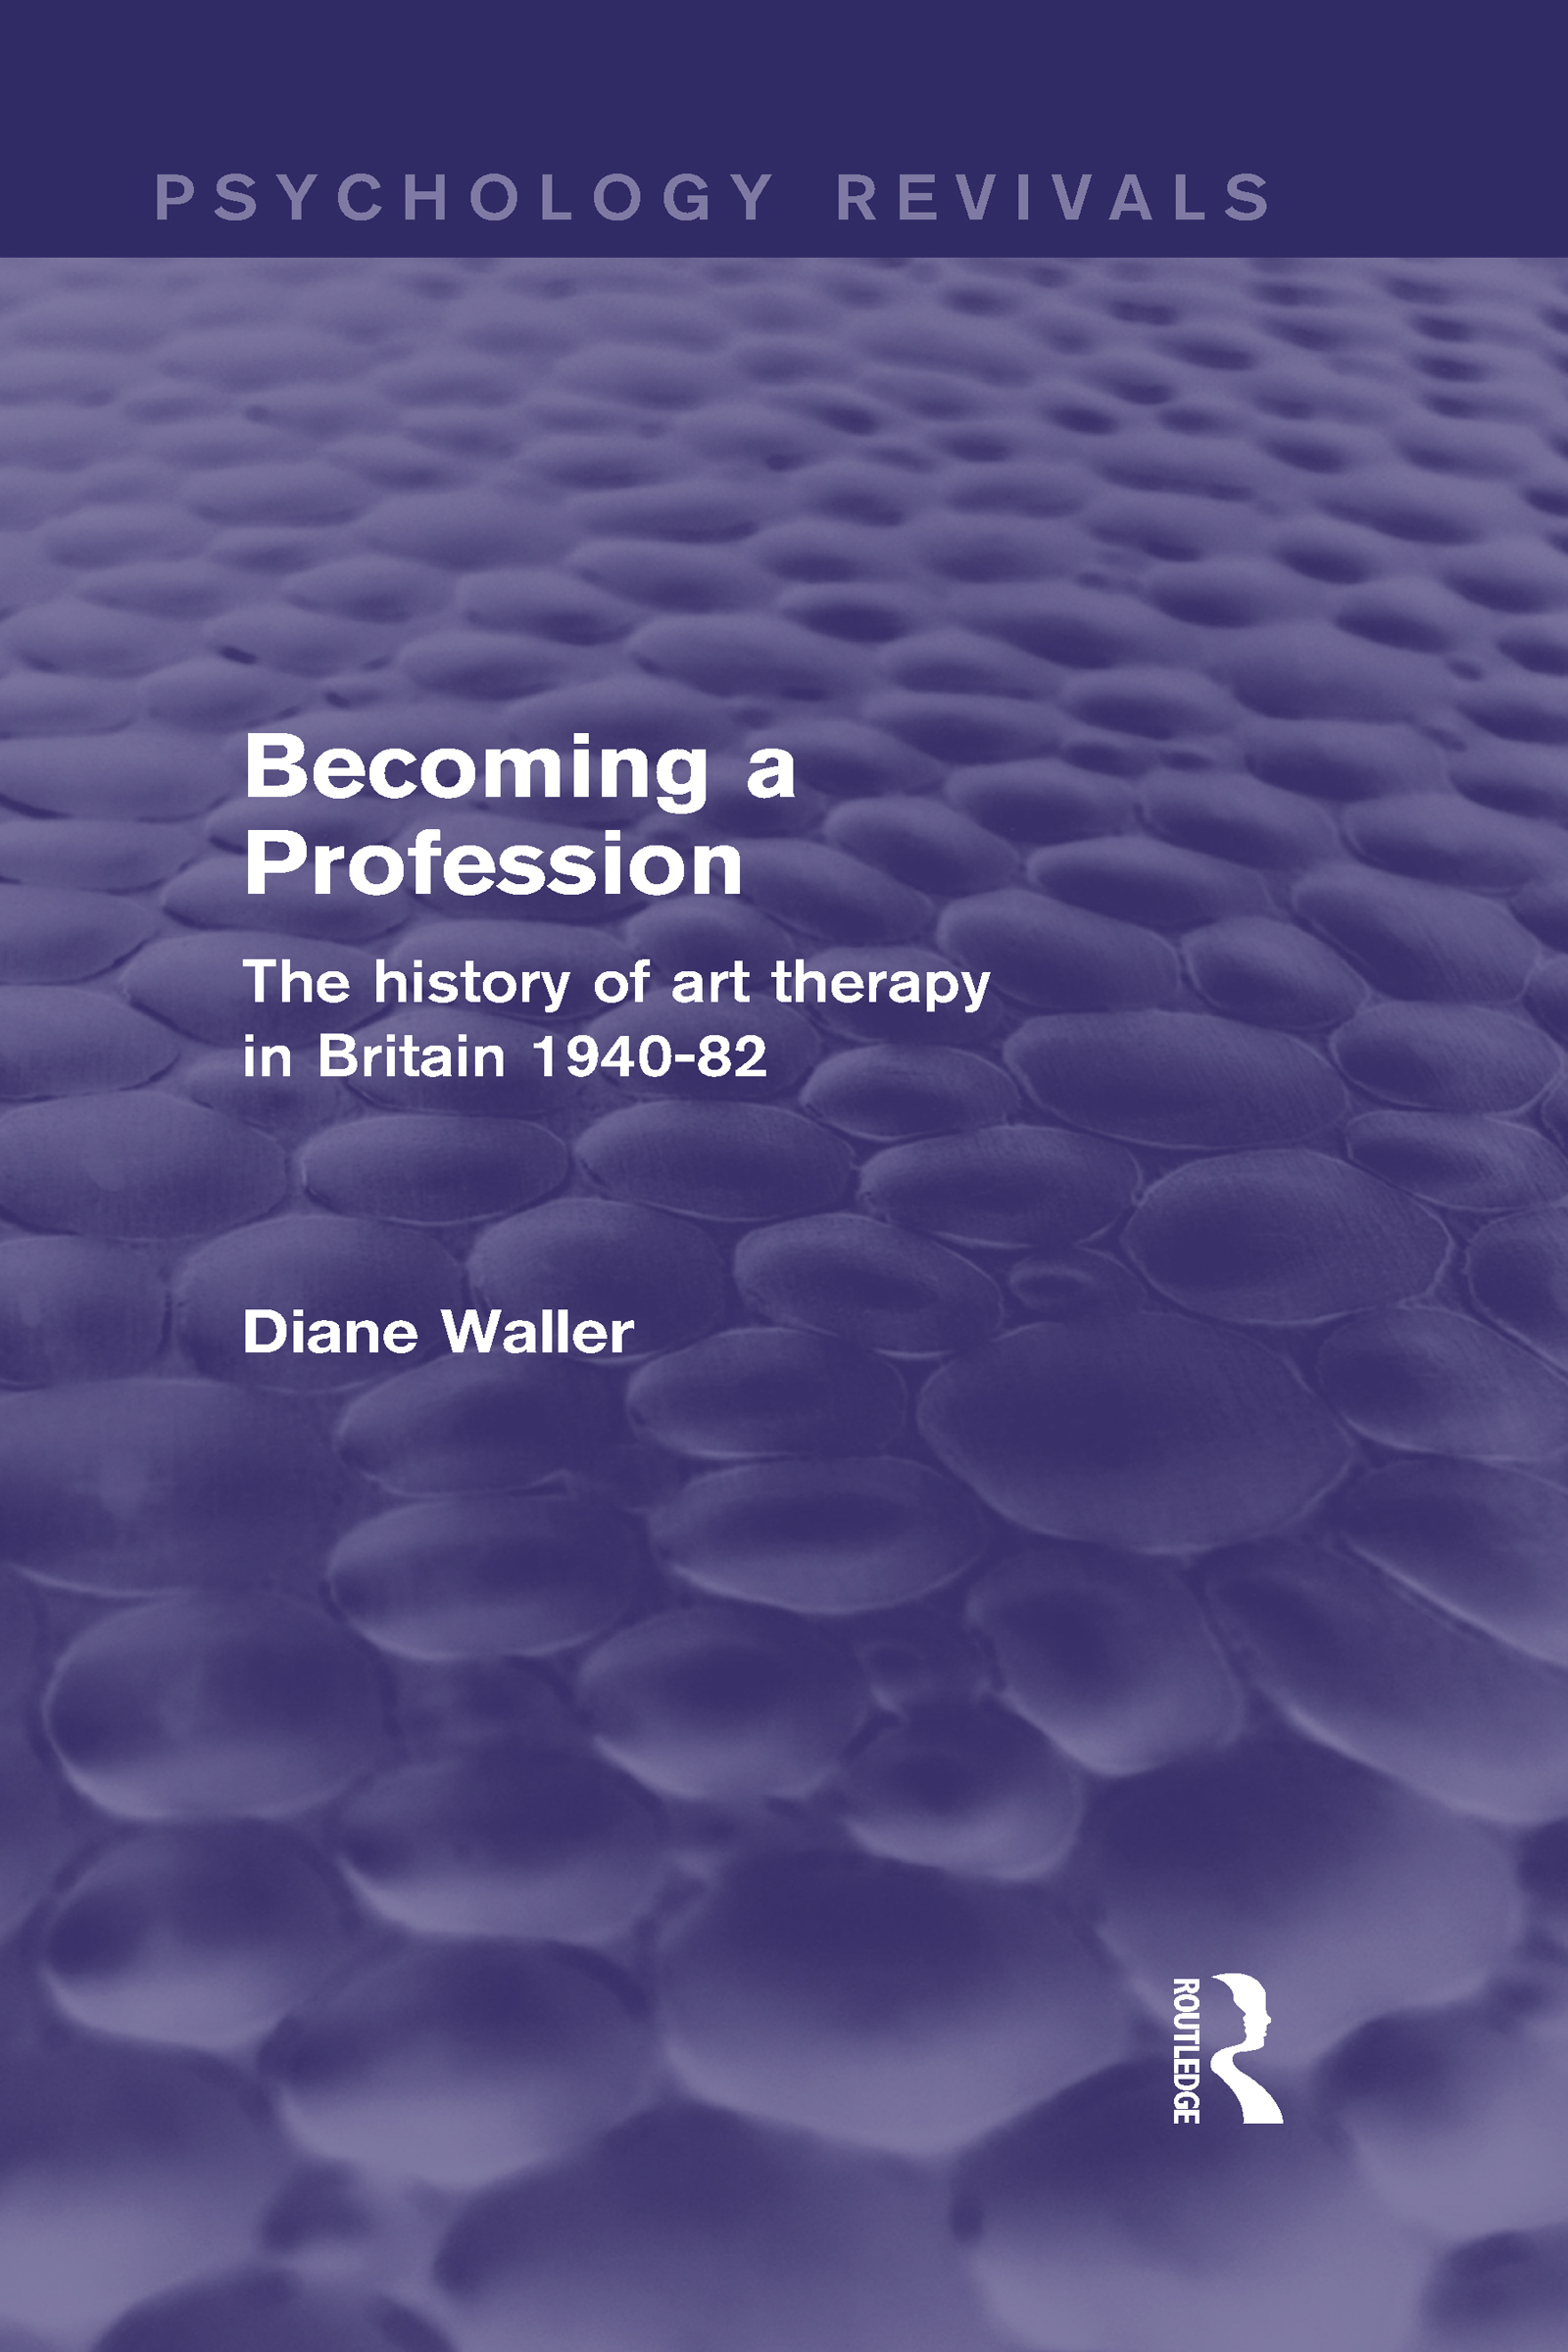 Becoming a Profession (Psychology Revivals): The History of Art Therapy in Britain 1940-82 (Hardback) book cover